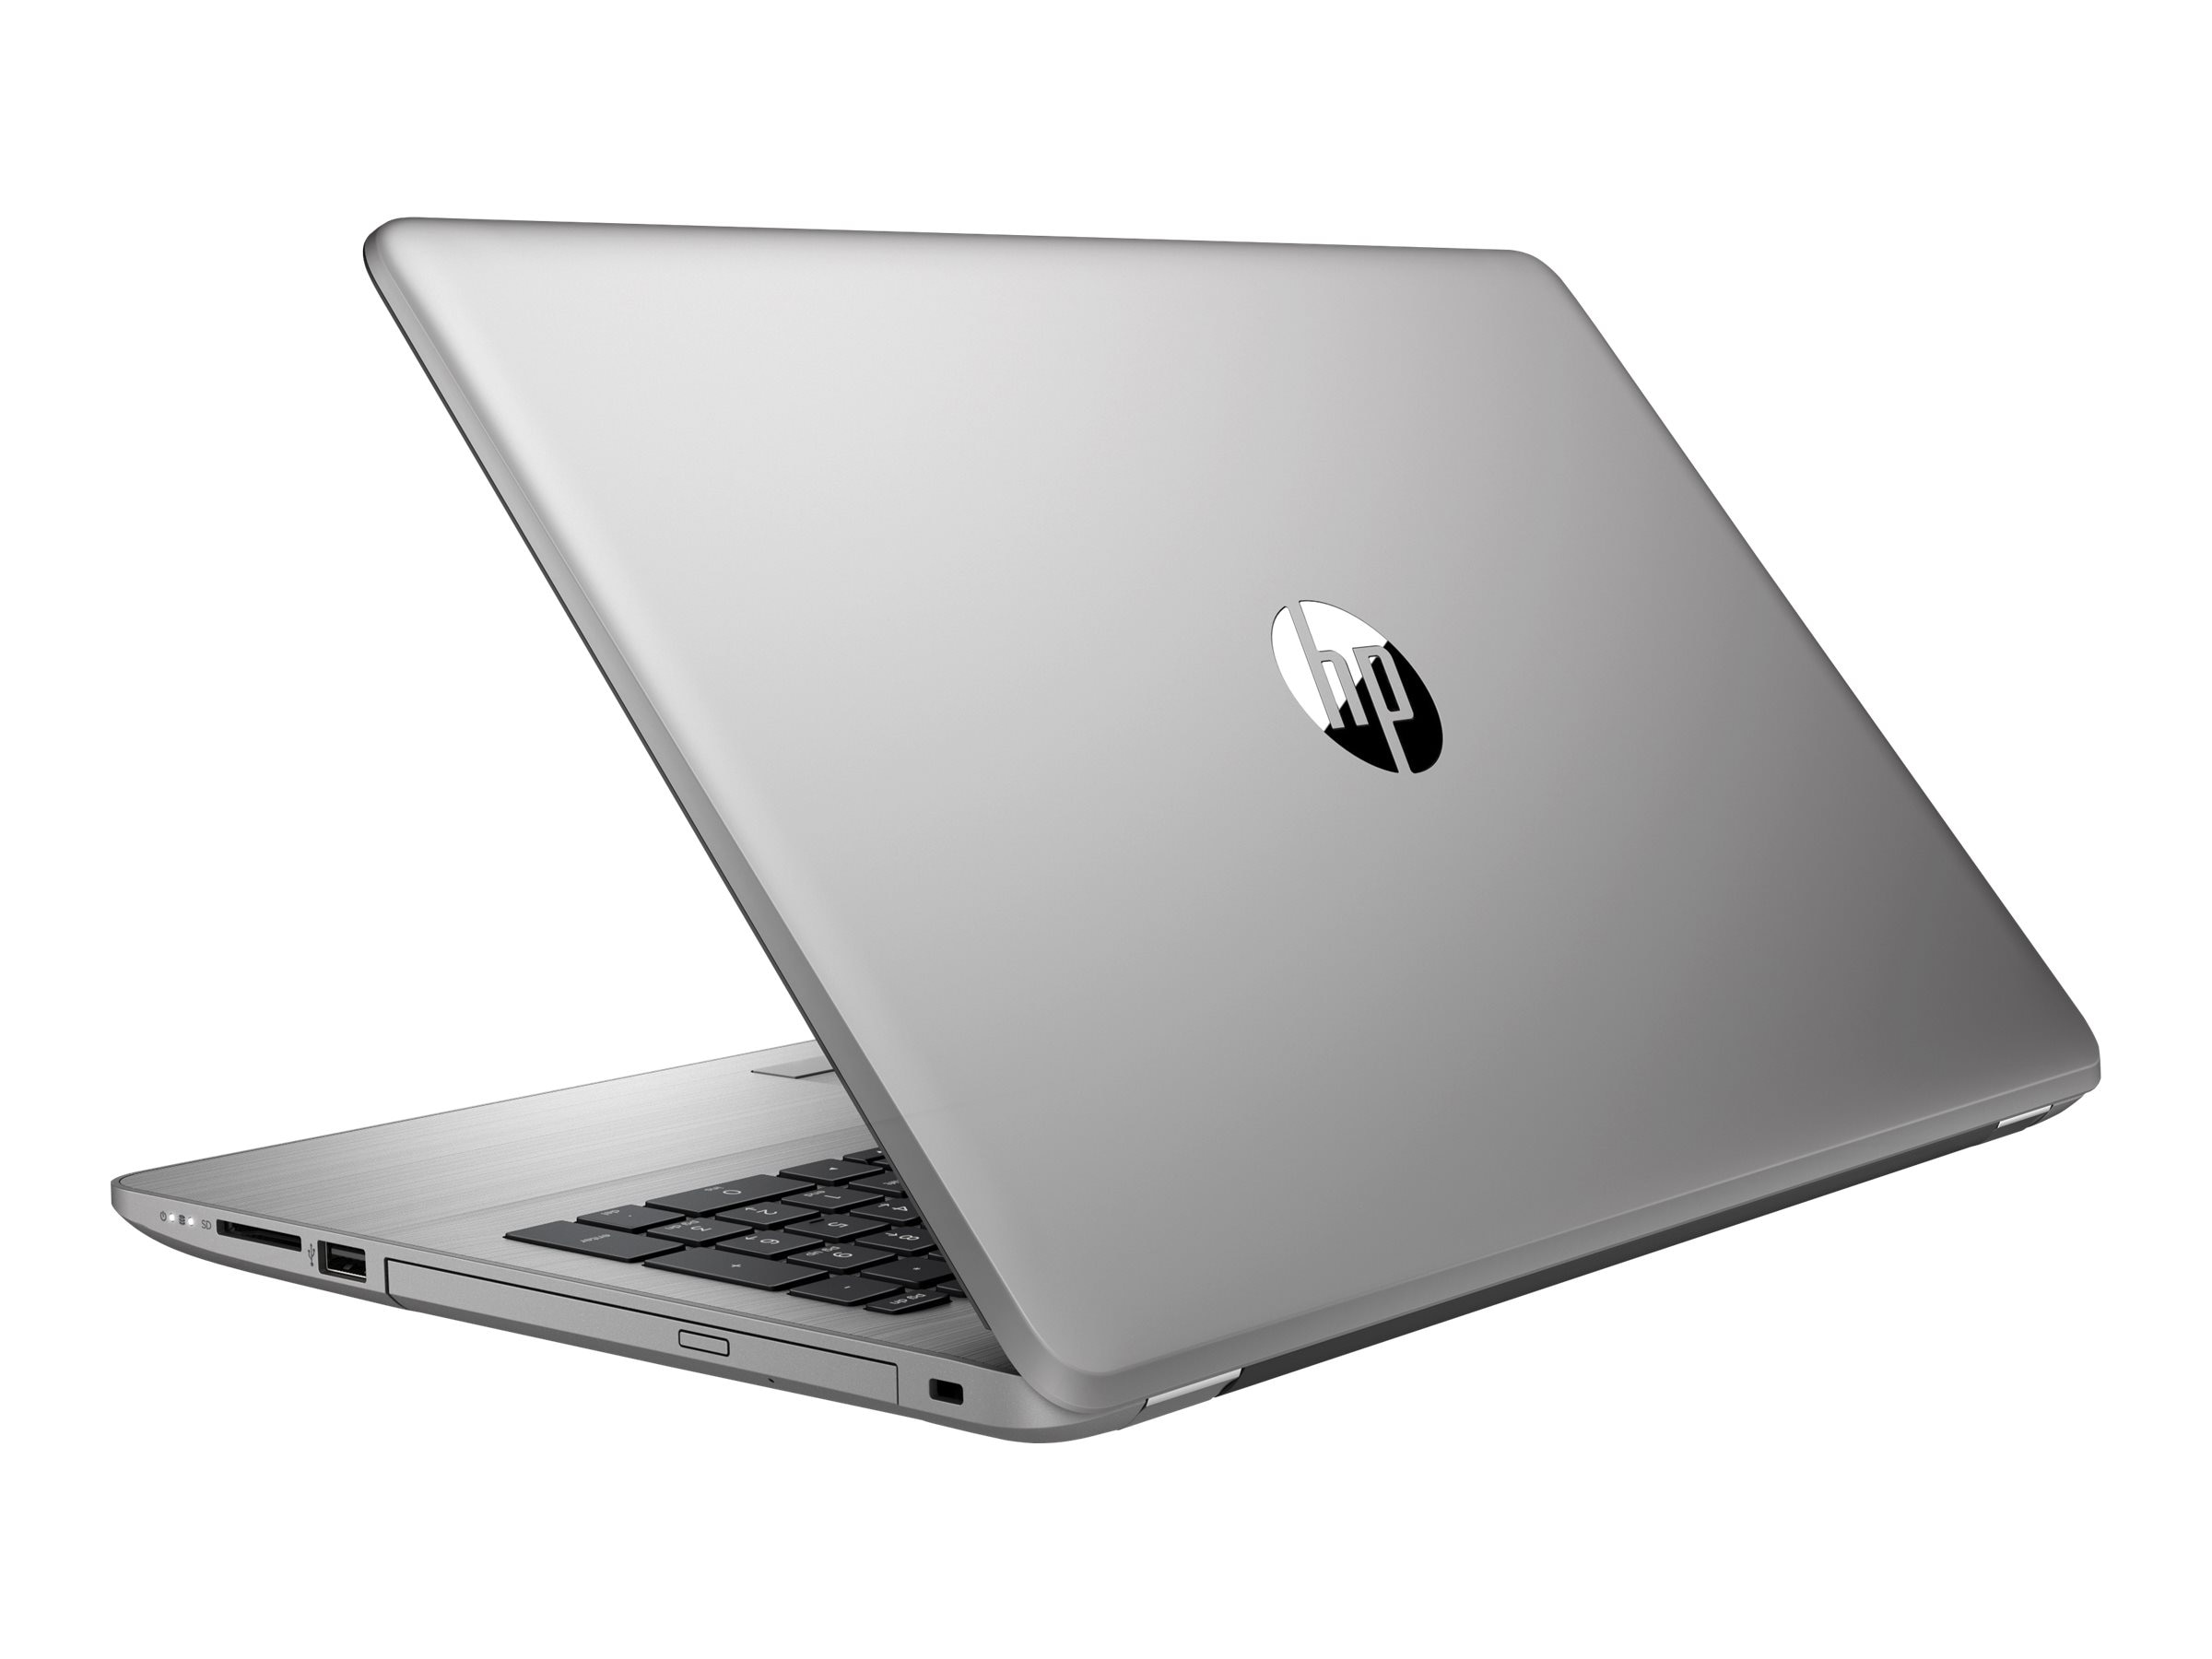 HP 250 G6 2.5GHz Core i5 15.6in display, 1NW57UT#ABA